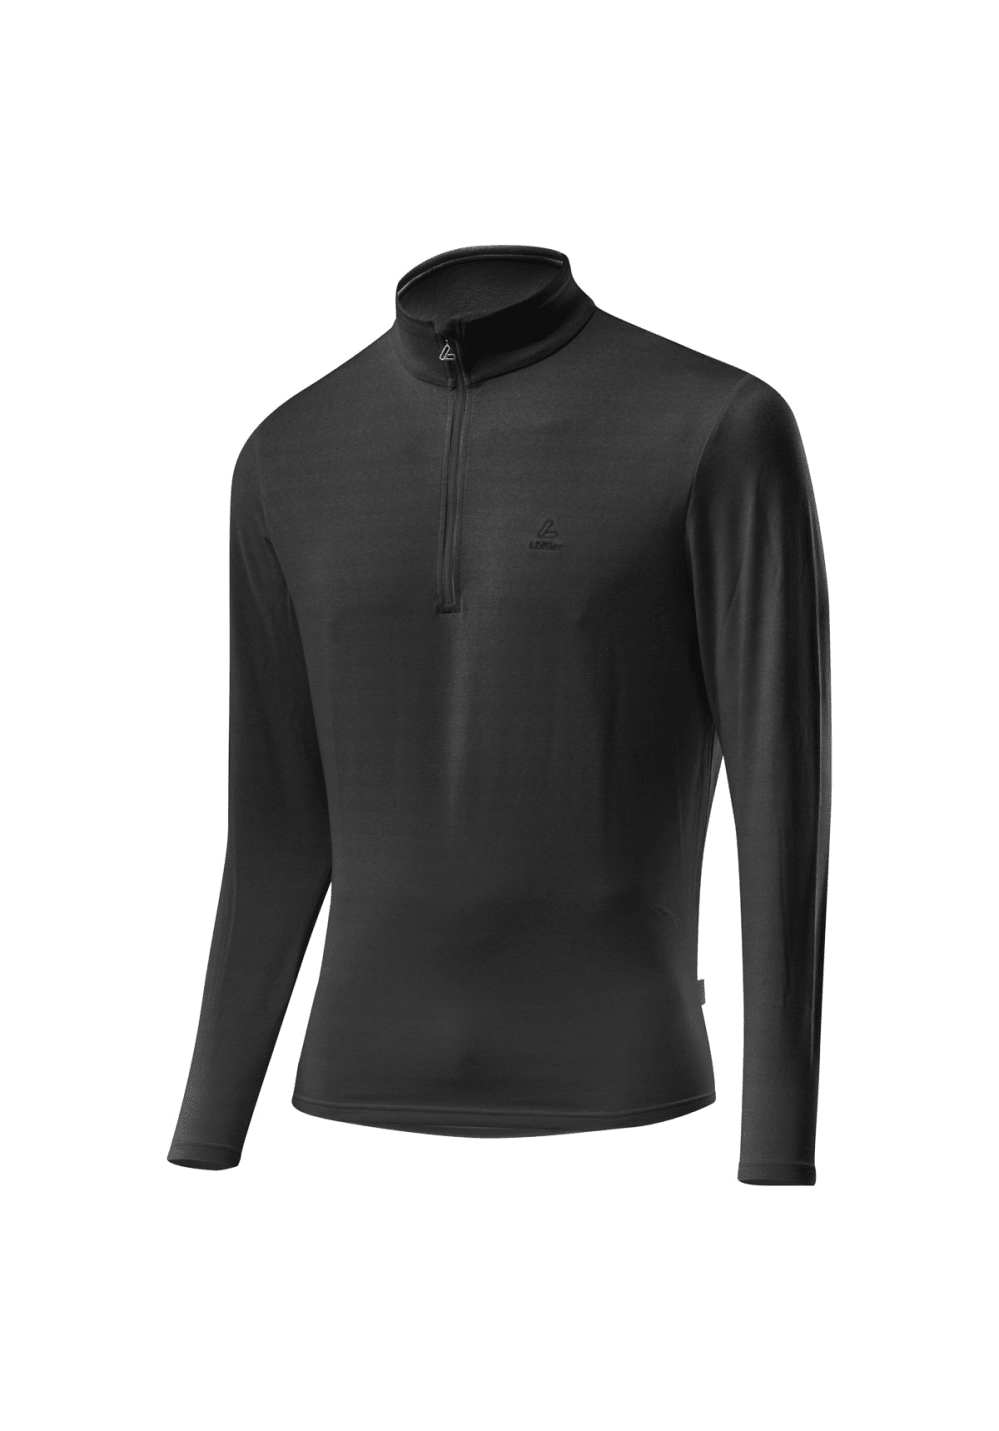 Loeffler Transtex Zip-Sweater Basic Comfort Hommes Maillot course